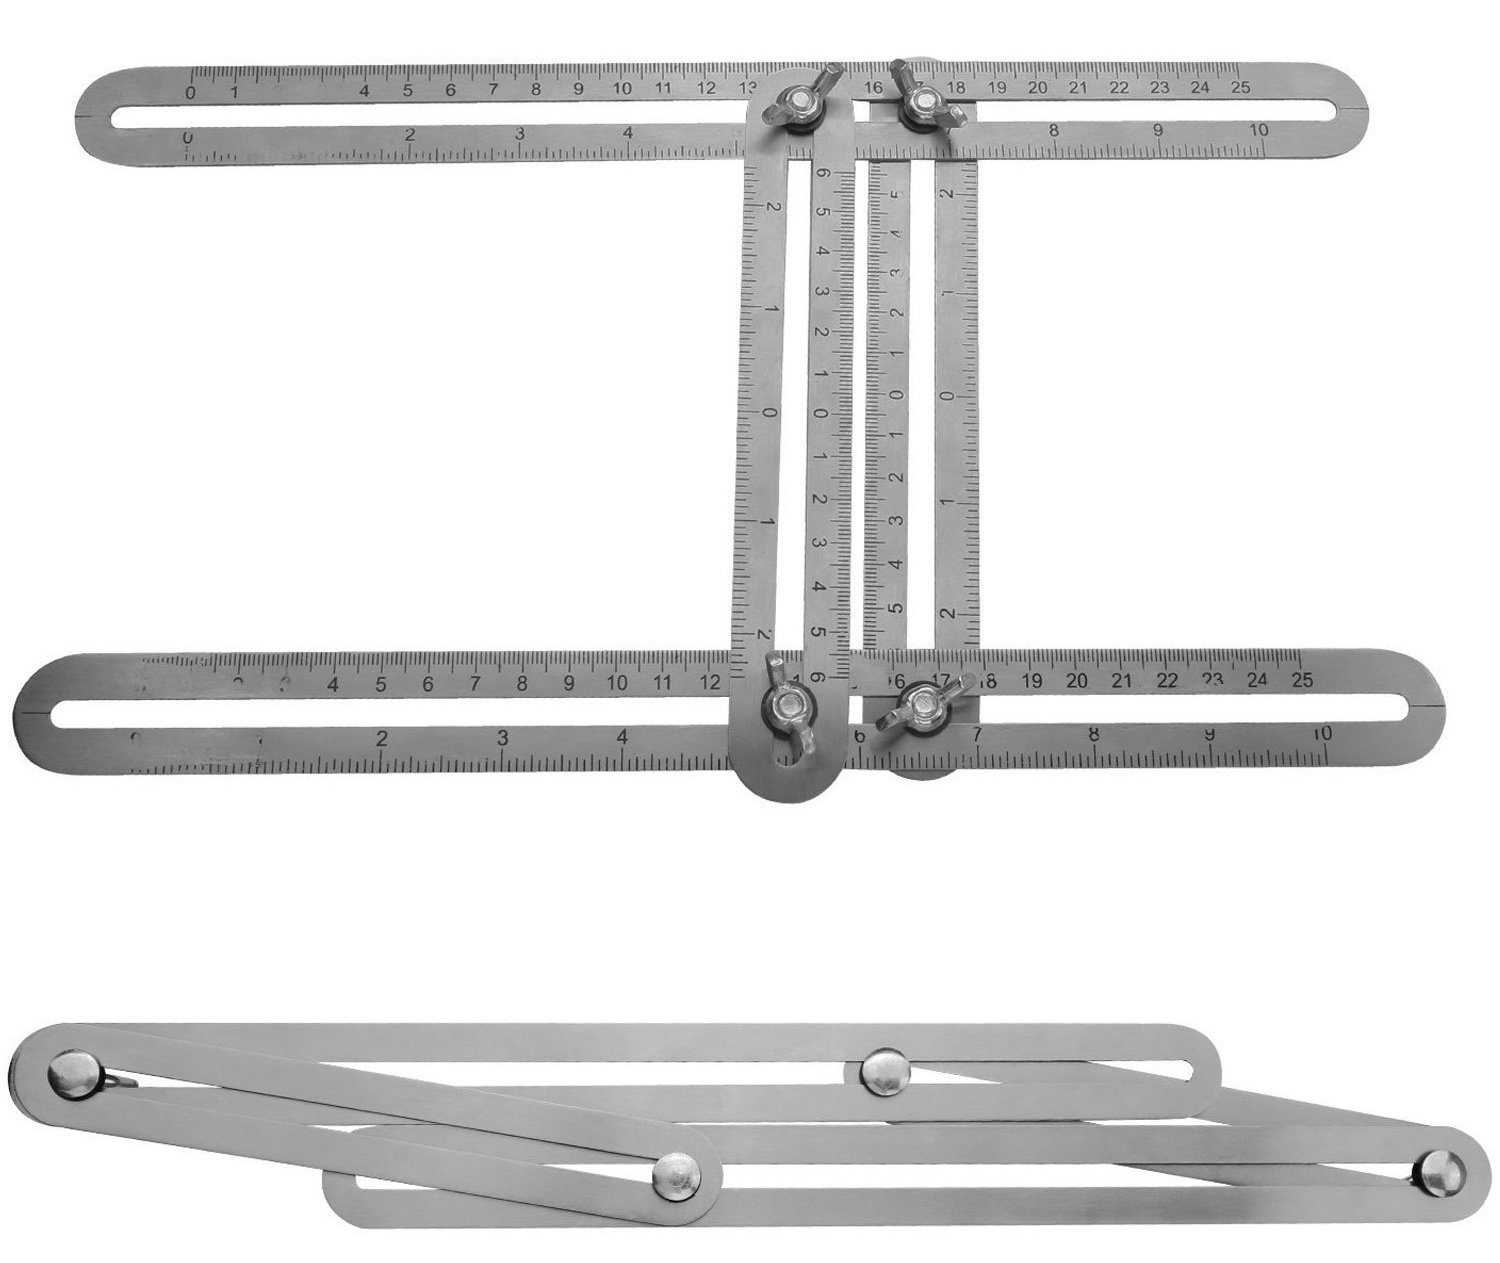 SixSupply Multi Angle Measuring Ruler |Features high-grade stainless steel | Ultimate 836 Angleizer Template Tool / Layout Tool Measurement For Handymen, Builders, Craftsmen, DIY-ers by SixSupply